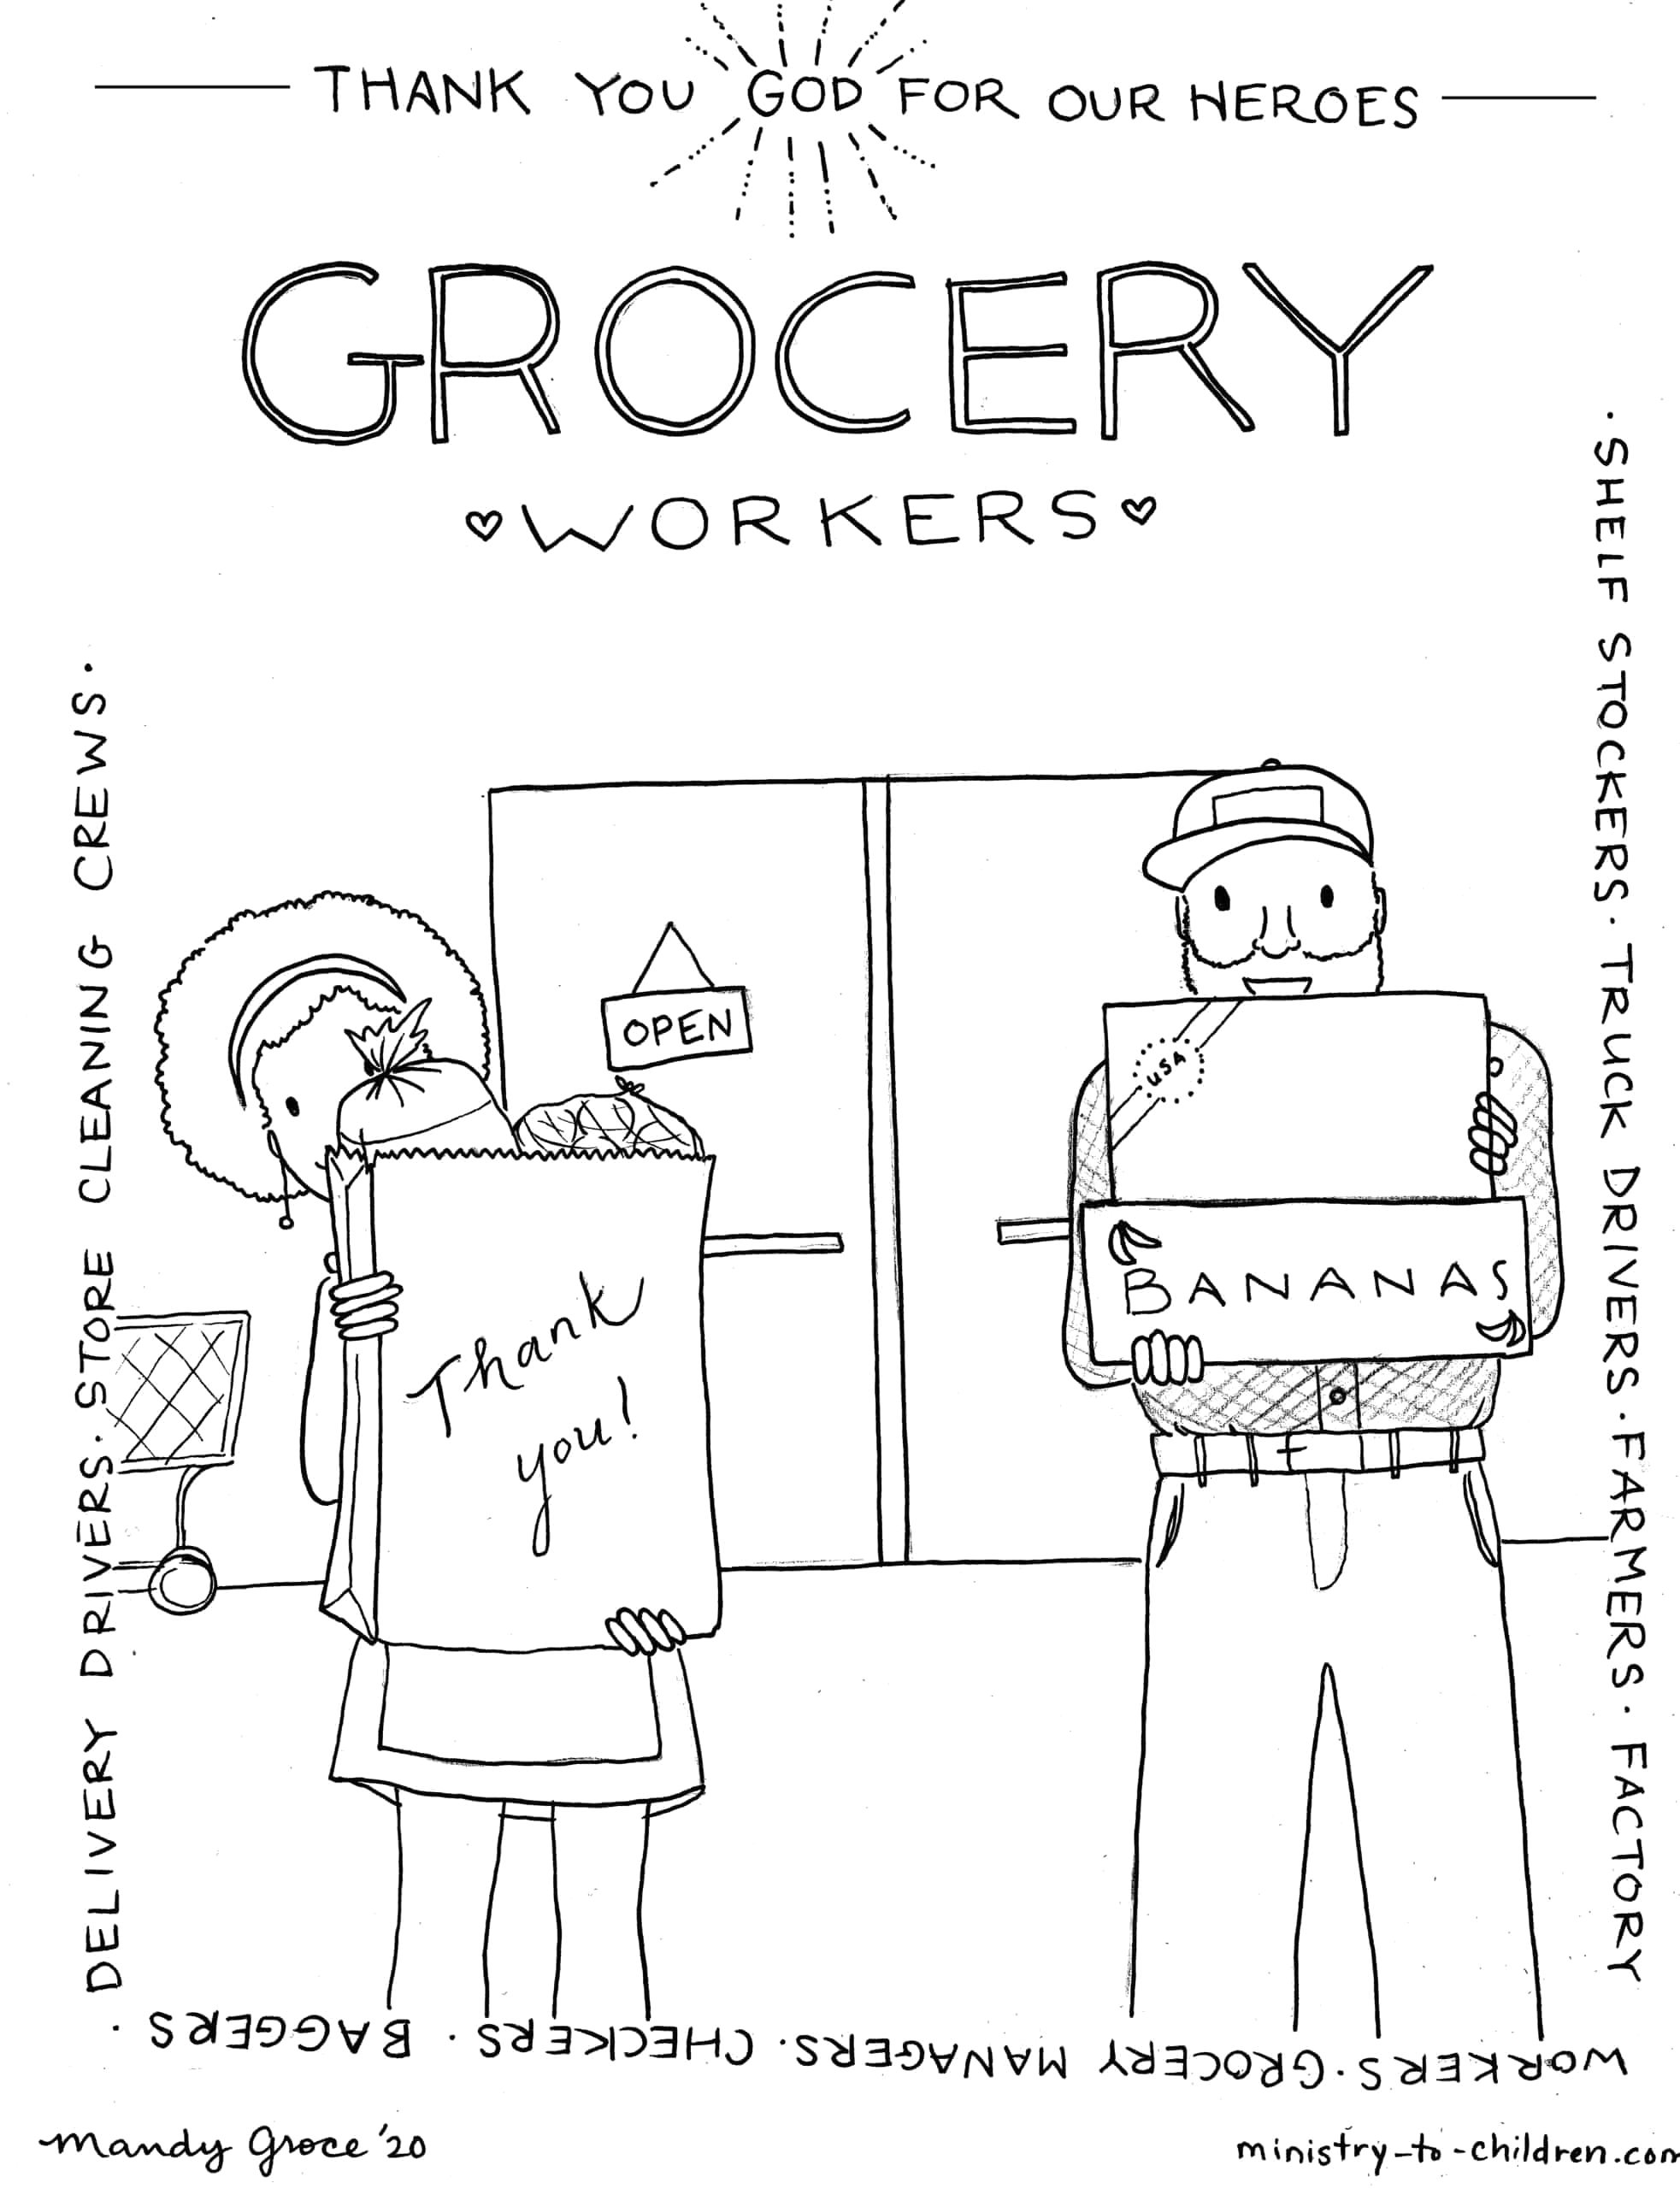 grocery workers heroes coloring page